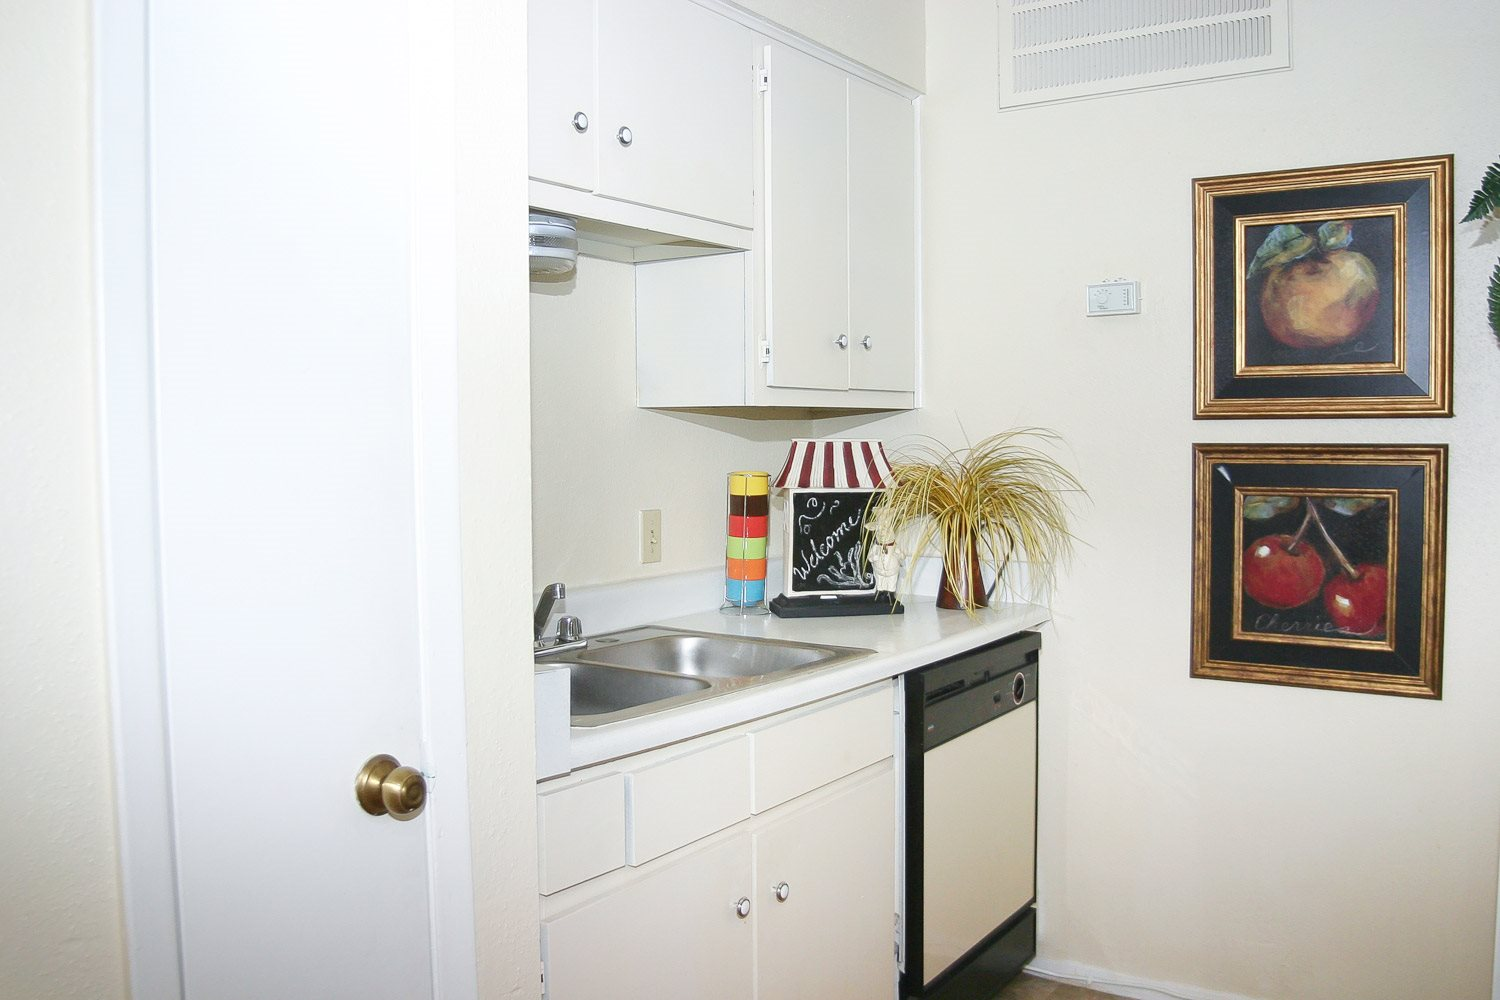 Apartment Kitchen Photo at Woodhollow Apartments in Huntsville , TX 77340